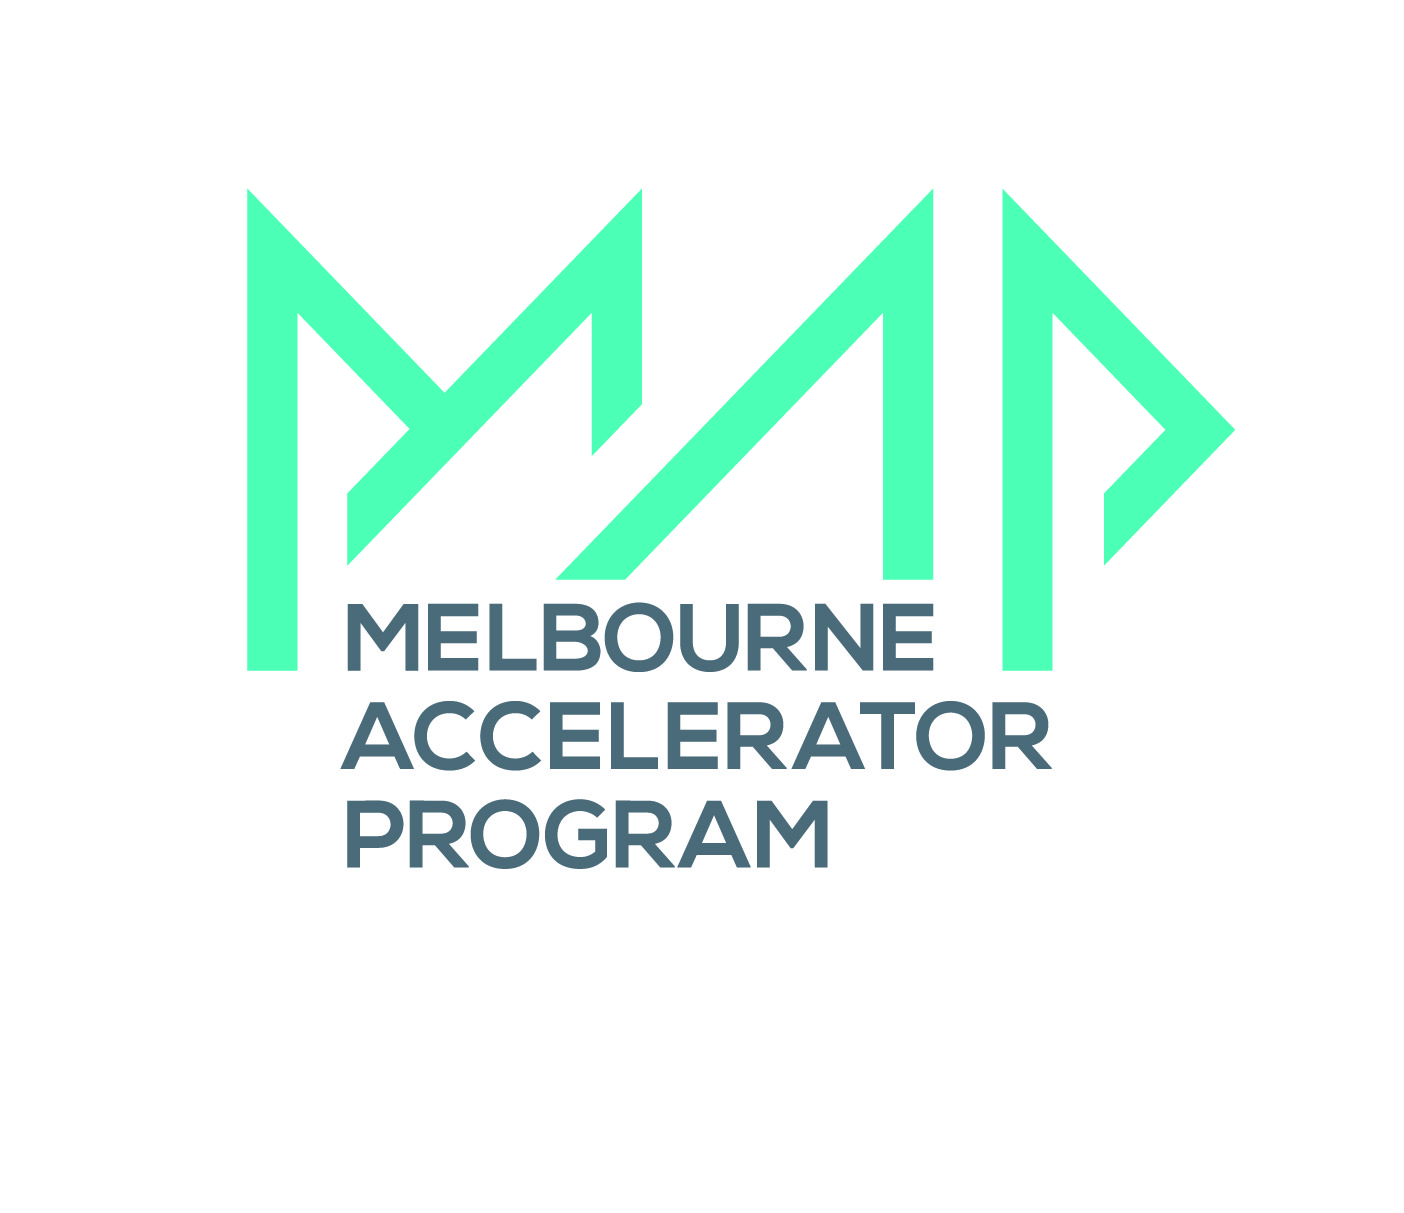 Melbourne Accelerator Program logo